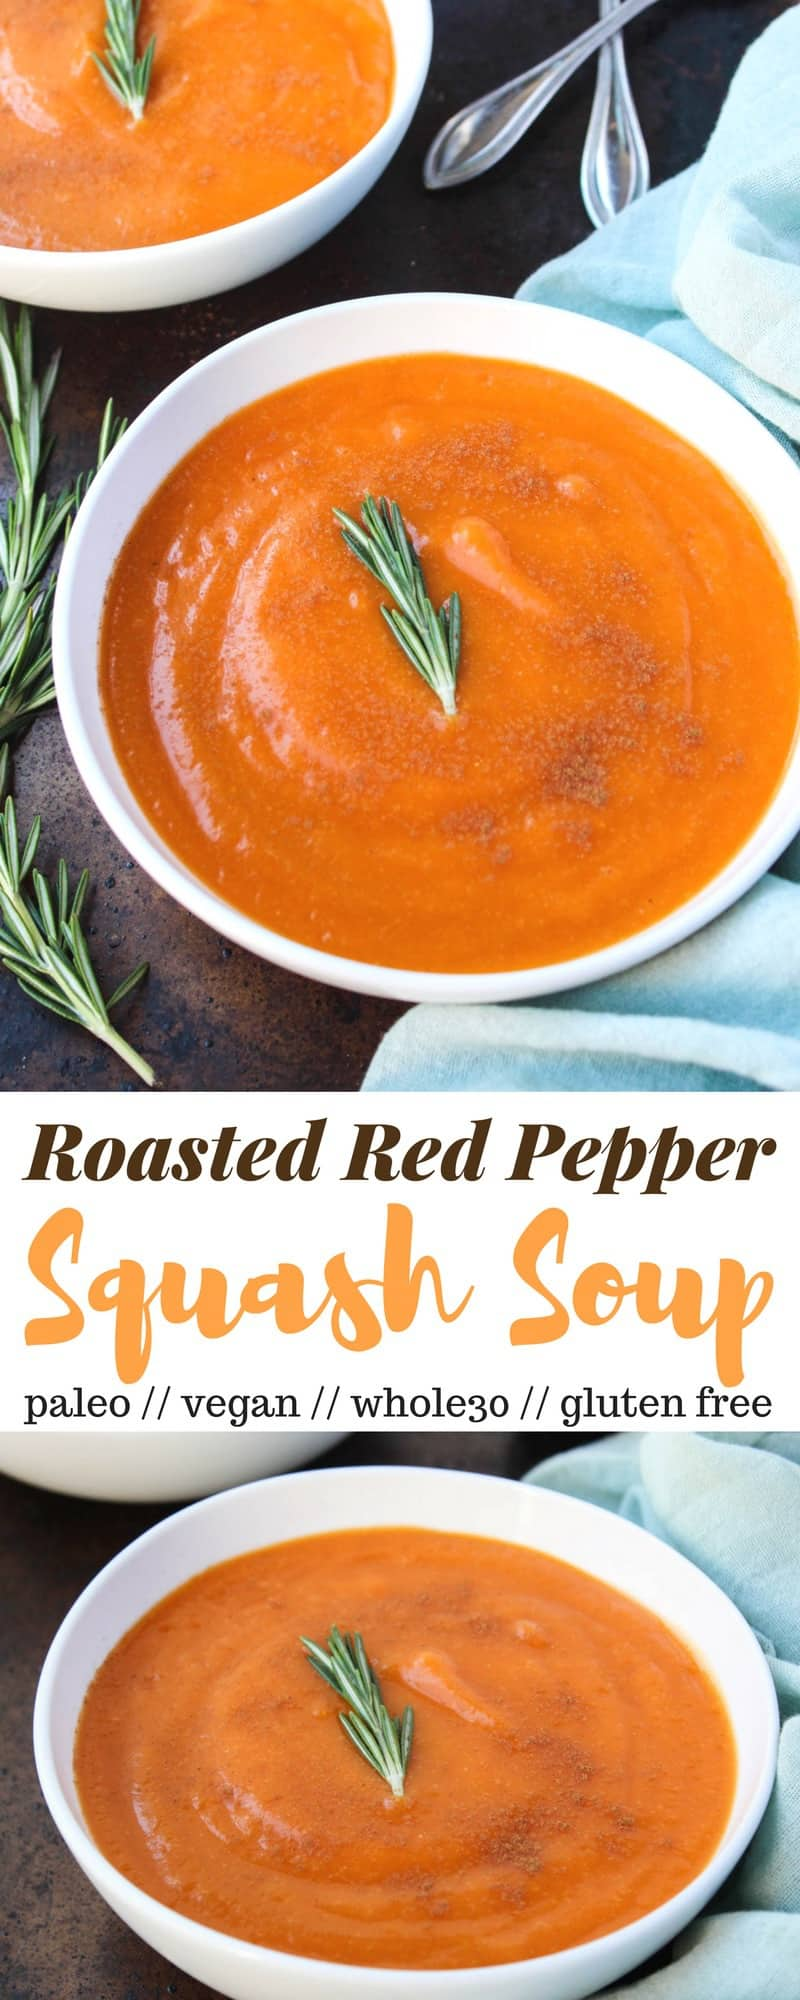 An easy, creamy veggie based soup, this Roasted Red Pepper & Squash Soup is perfect for chilly nights. A few ingredients make it vegan, paleo, dairy free, and Whole30 compliant - Eat the Gains